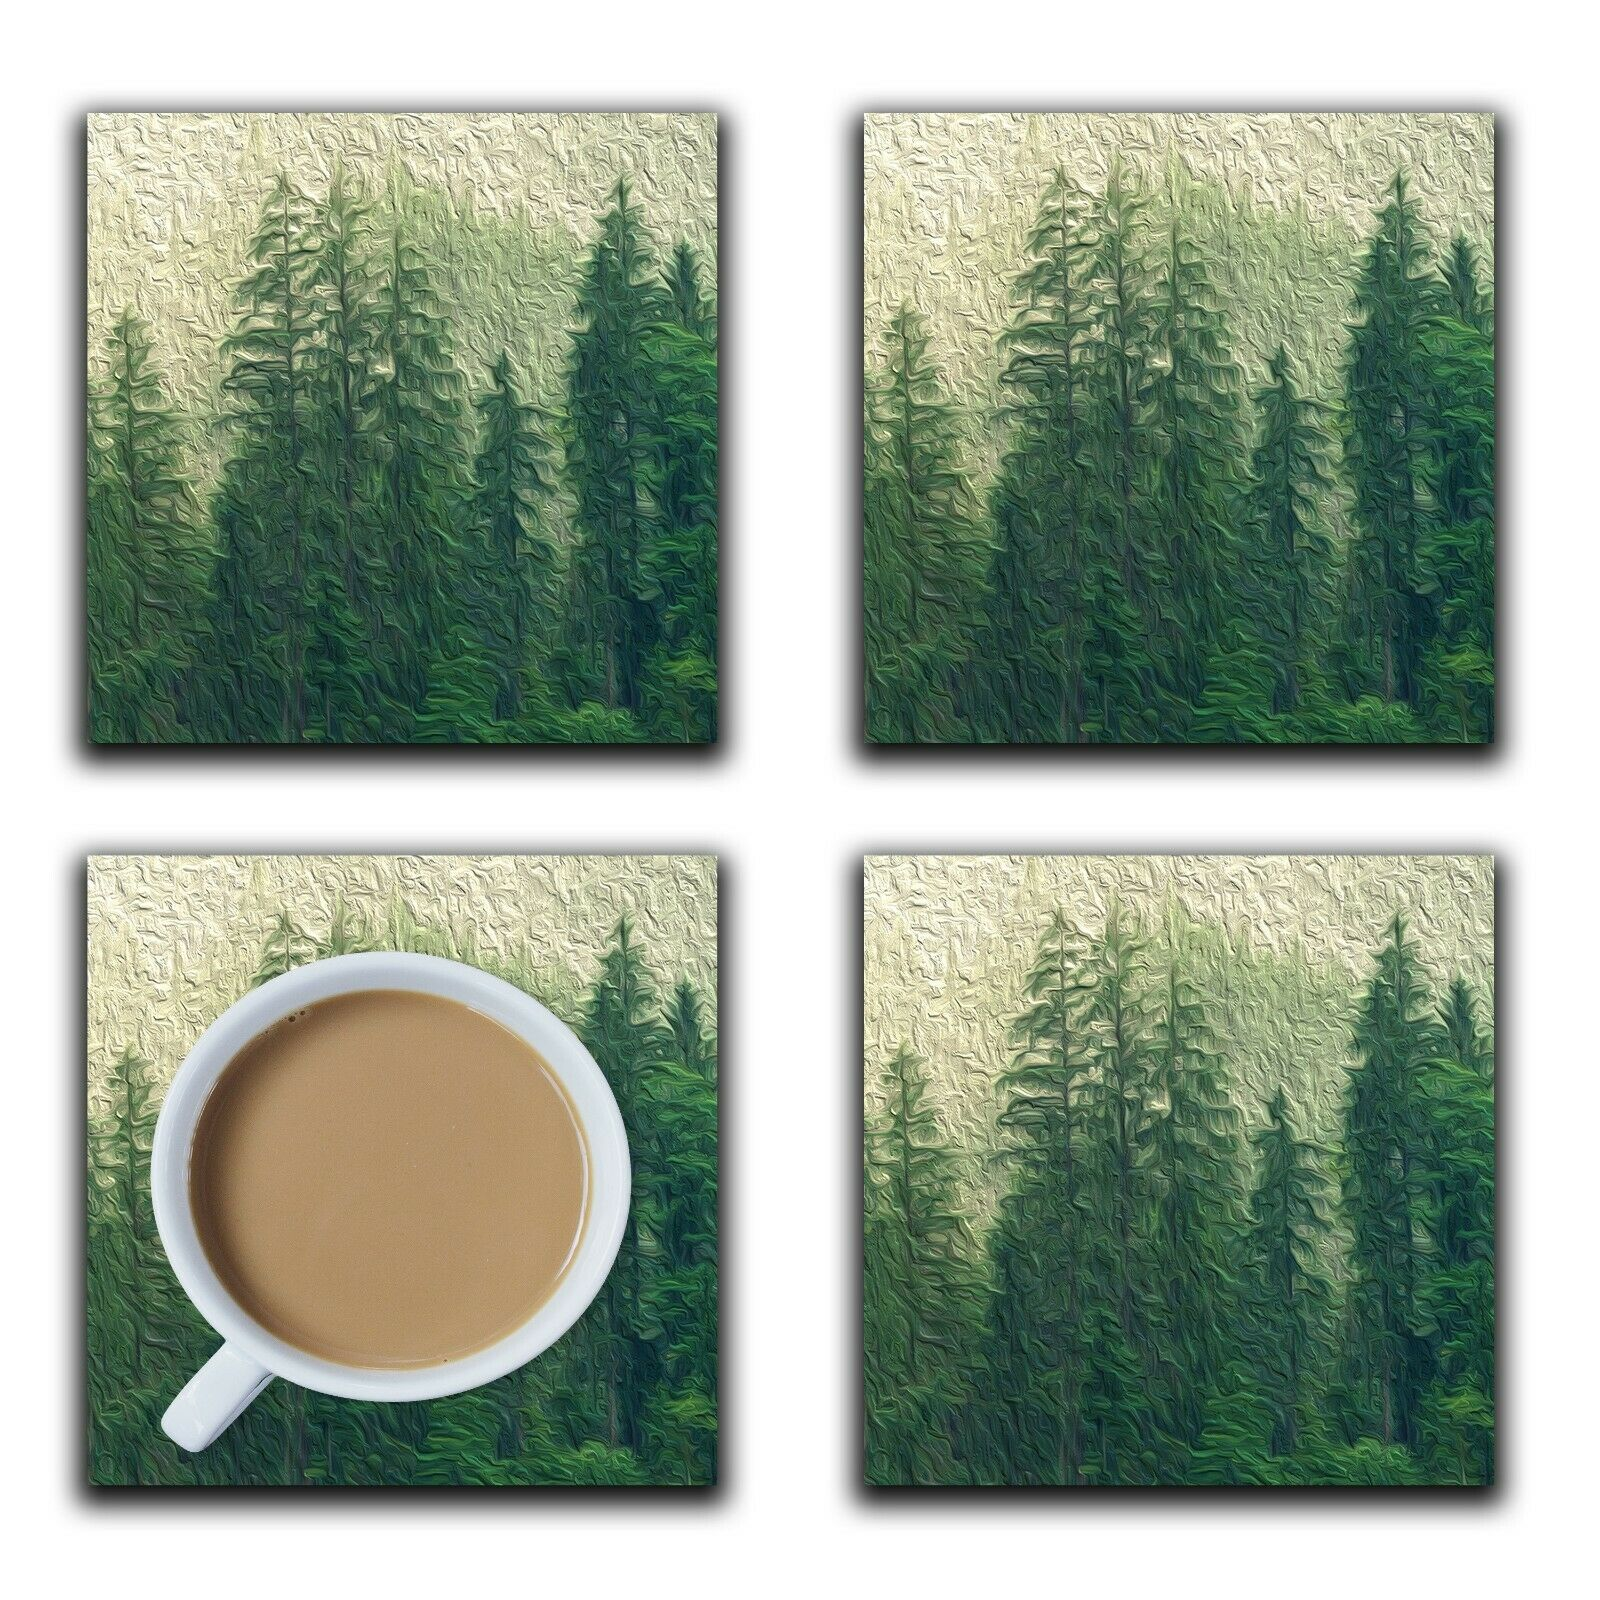 Embossi Printed Pine Tree Forest, wood or ceramic tile, set of 4